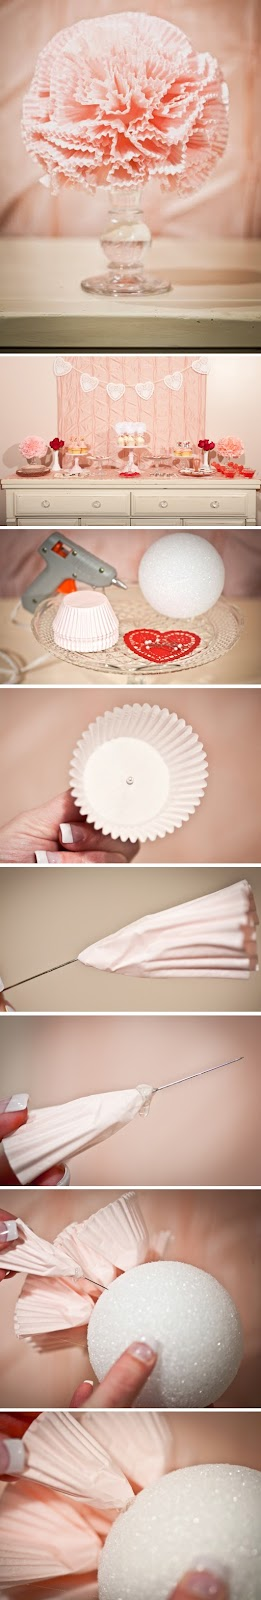 DIY cupcake liner tutorial floral pomander for a wedding - Flower Tutorials Directory - Click through to view 30 Fabulous Flower Tutorials!